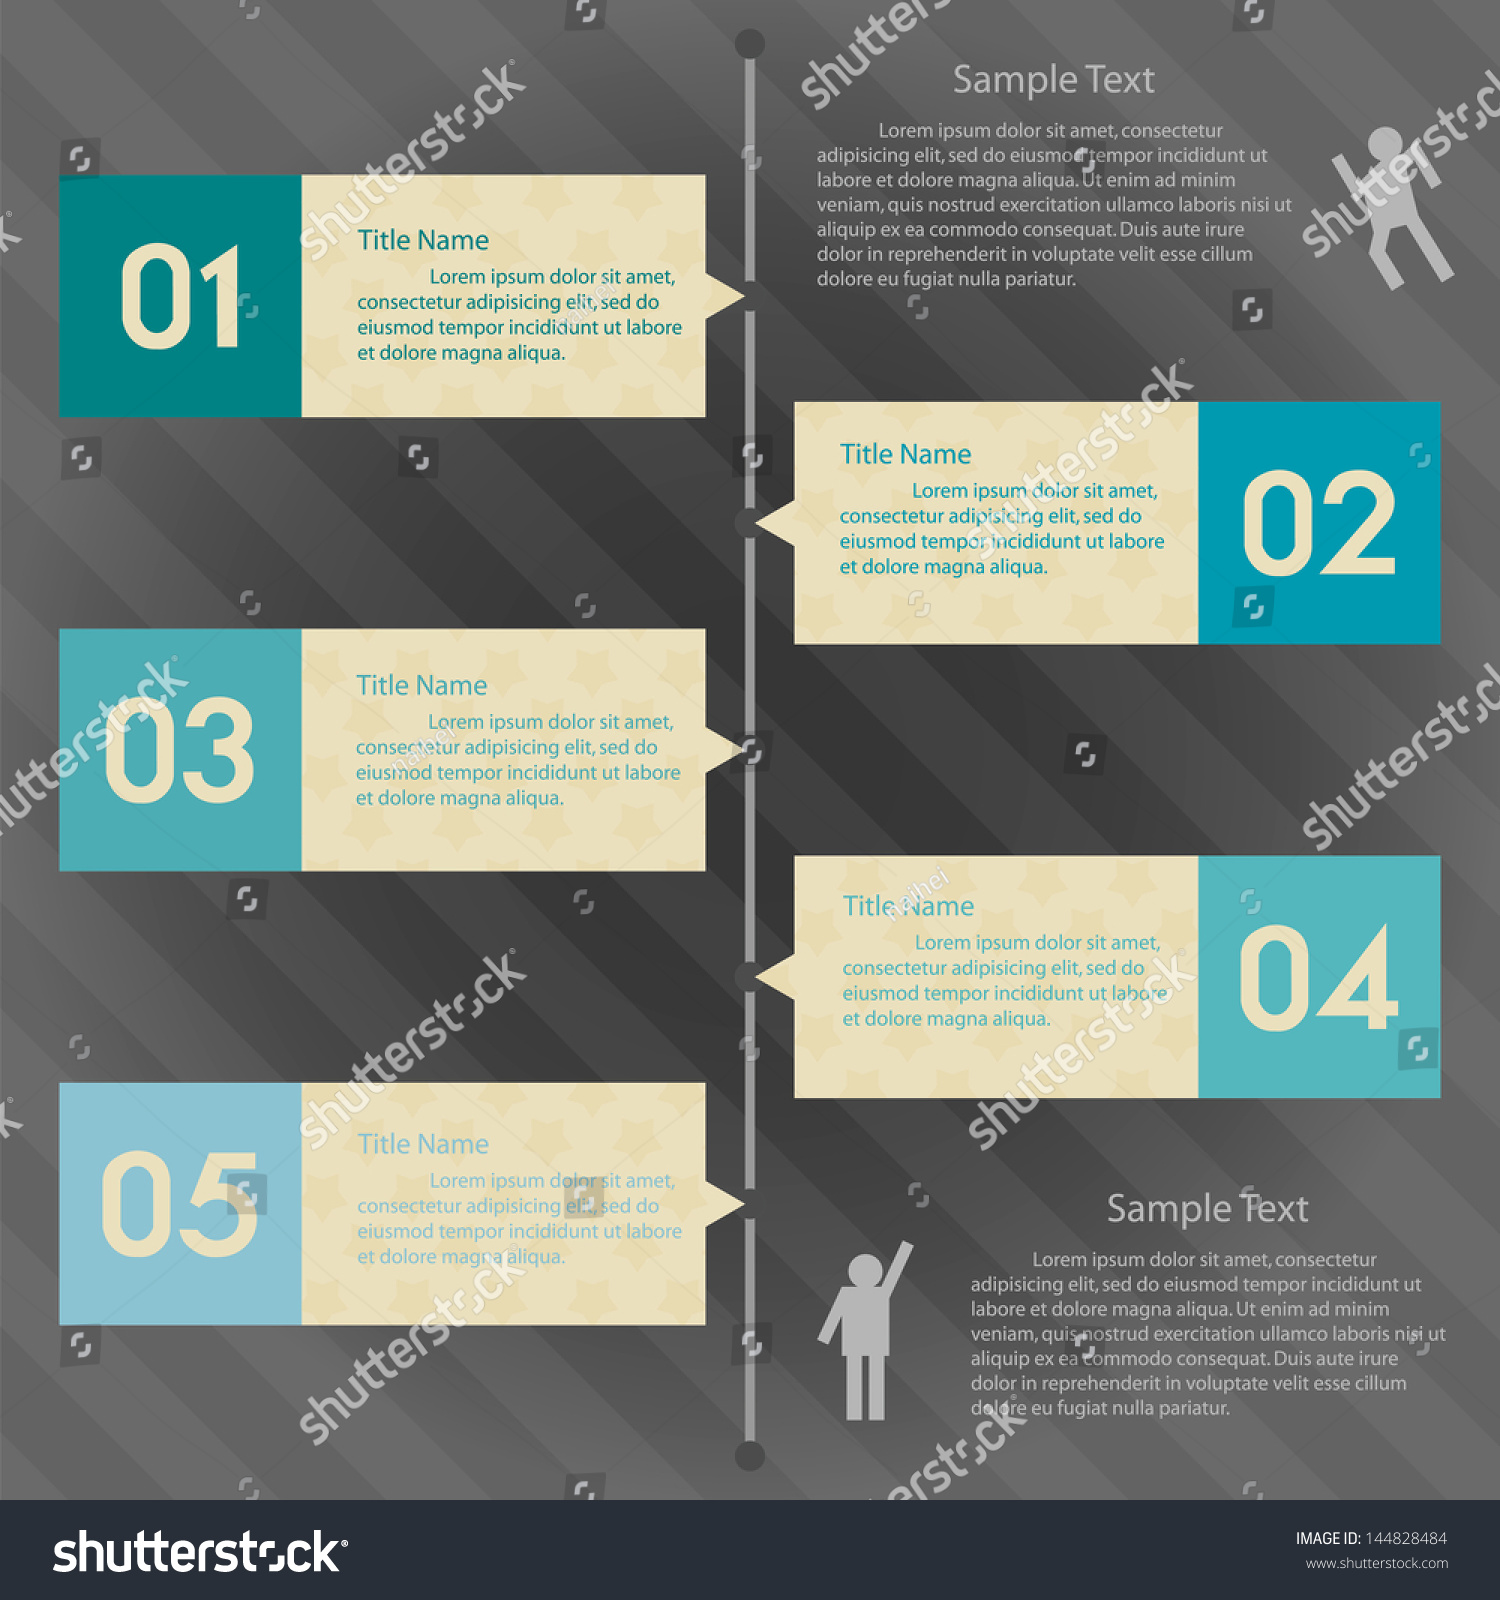 Doc585400 Timeline Website Template 9 Timeline Website – Timeline Website Template